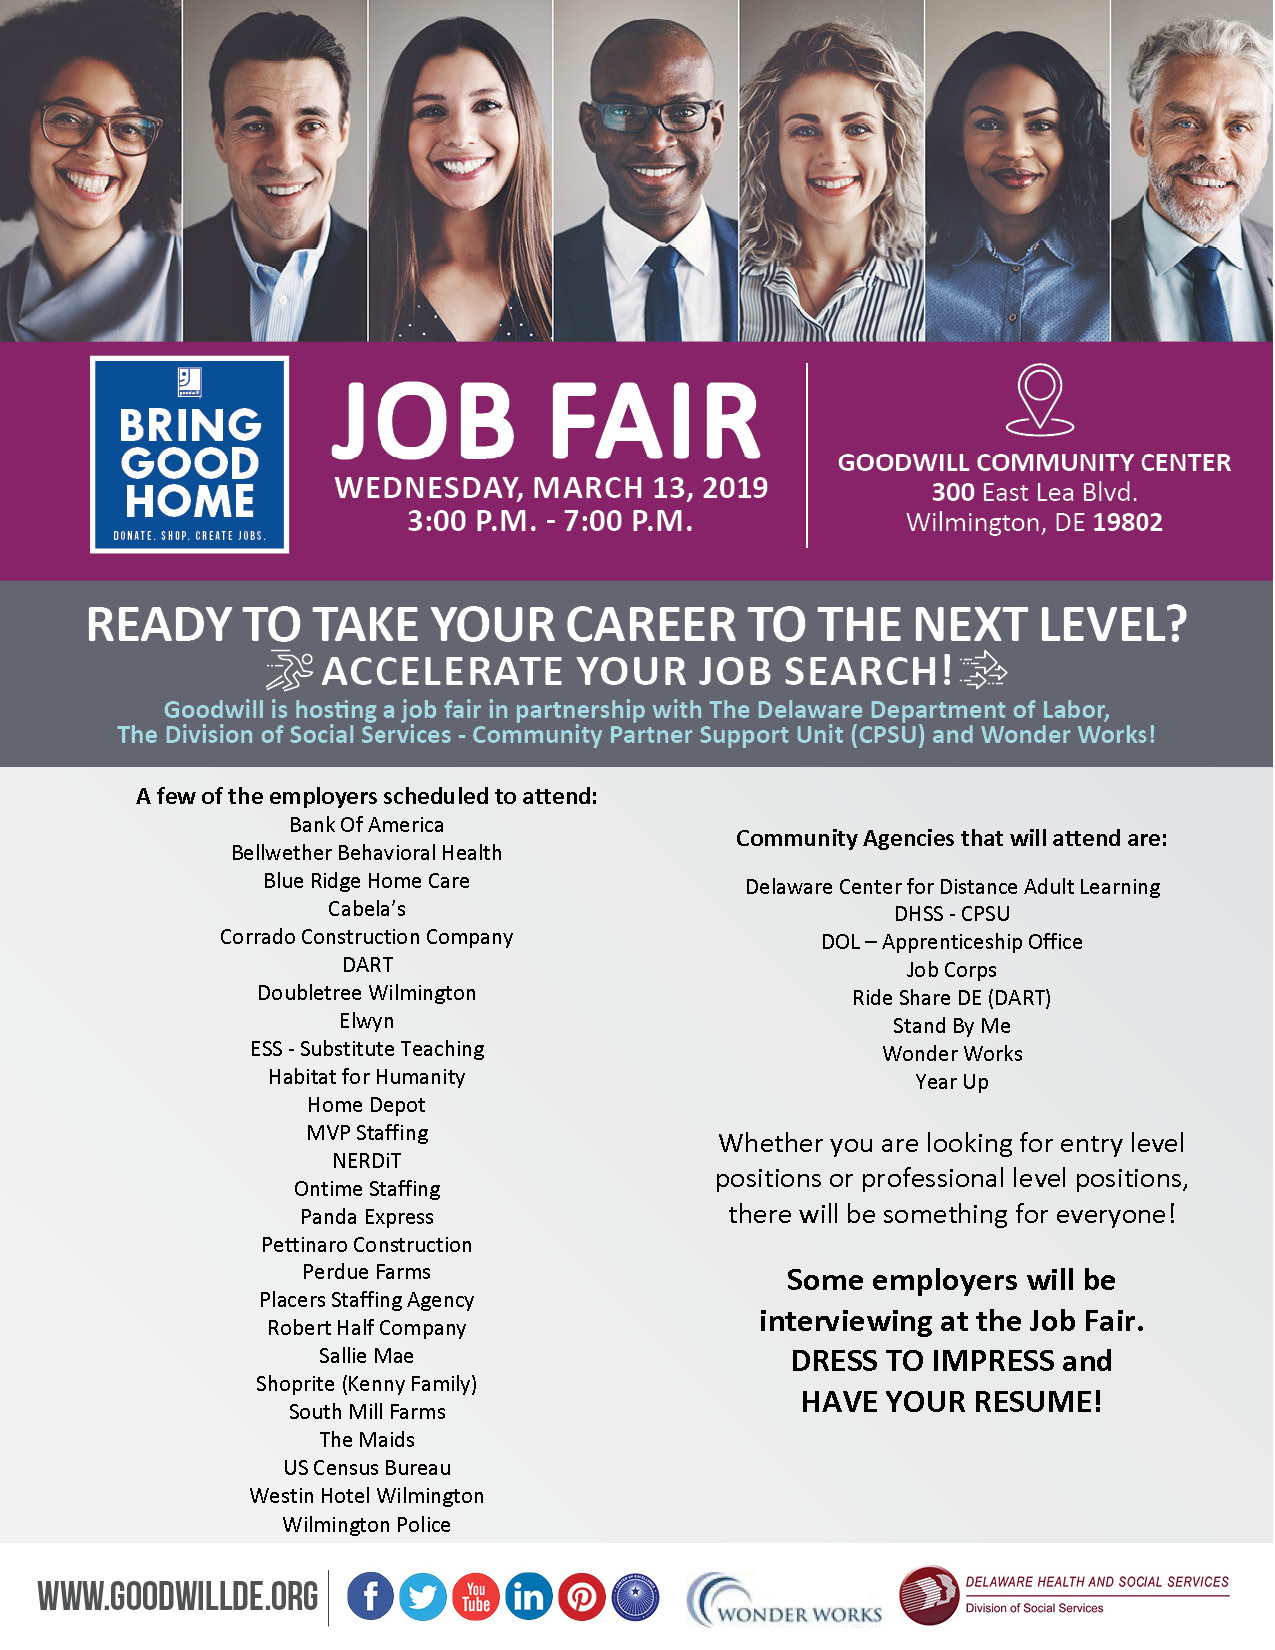 Job Fair At The Goodwill Center In Wilmington De Goodwill Of Delaware And Delaware County Pagoodwill Of Delaware And Delaware County Pa